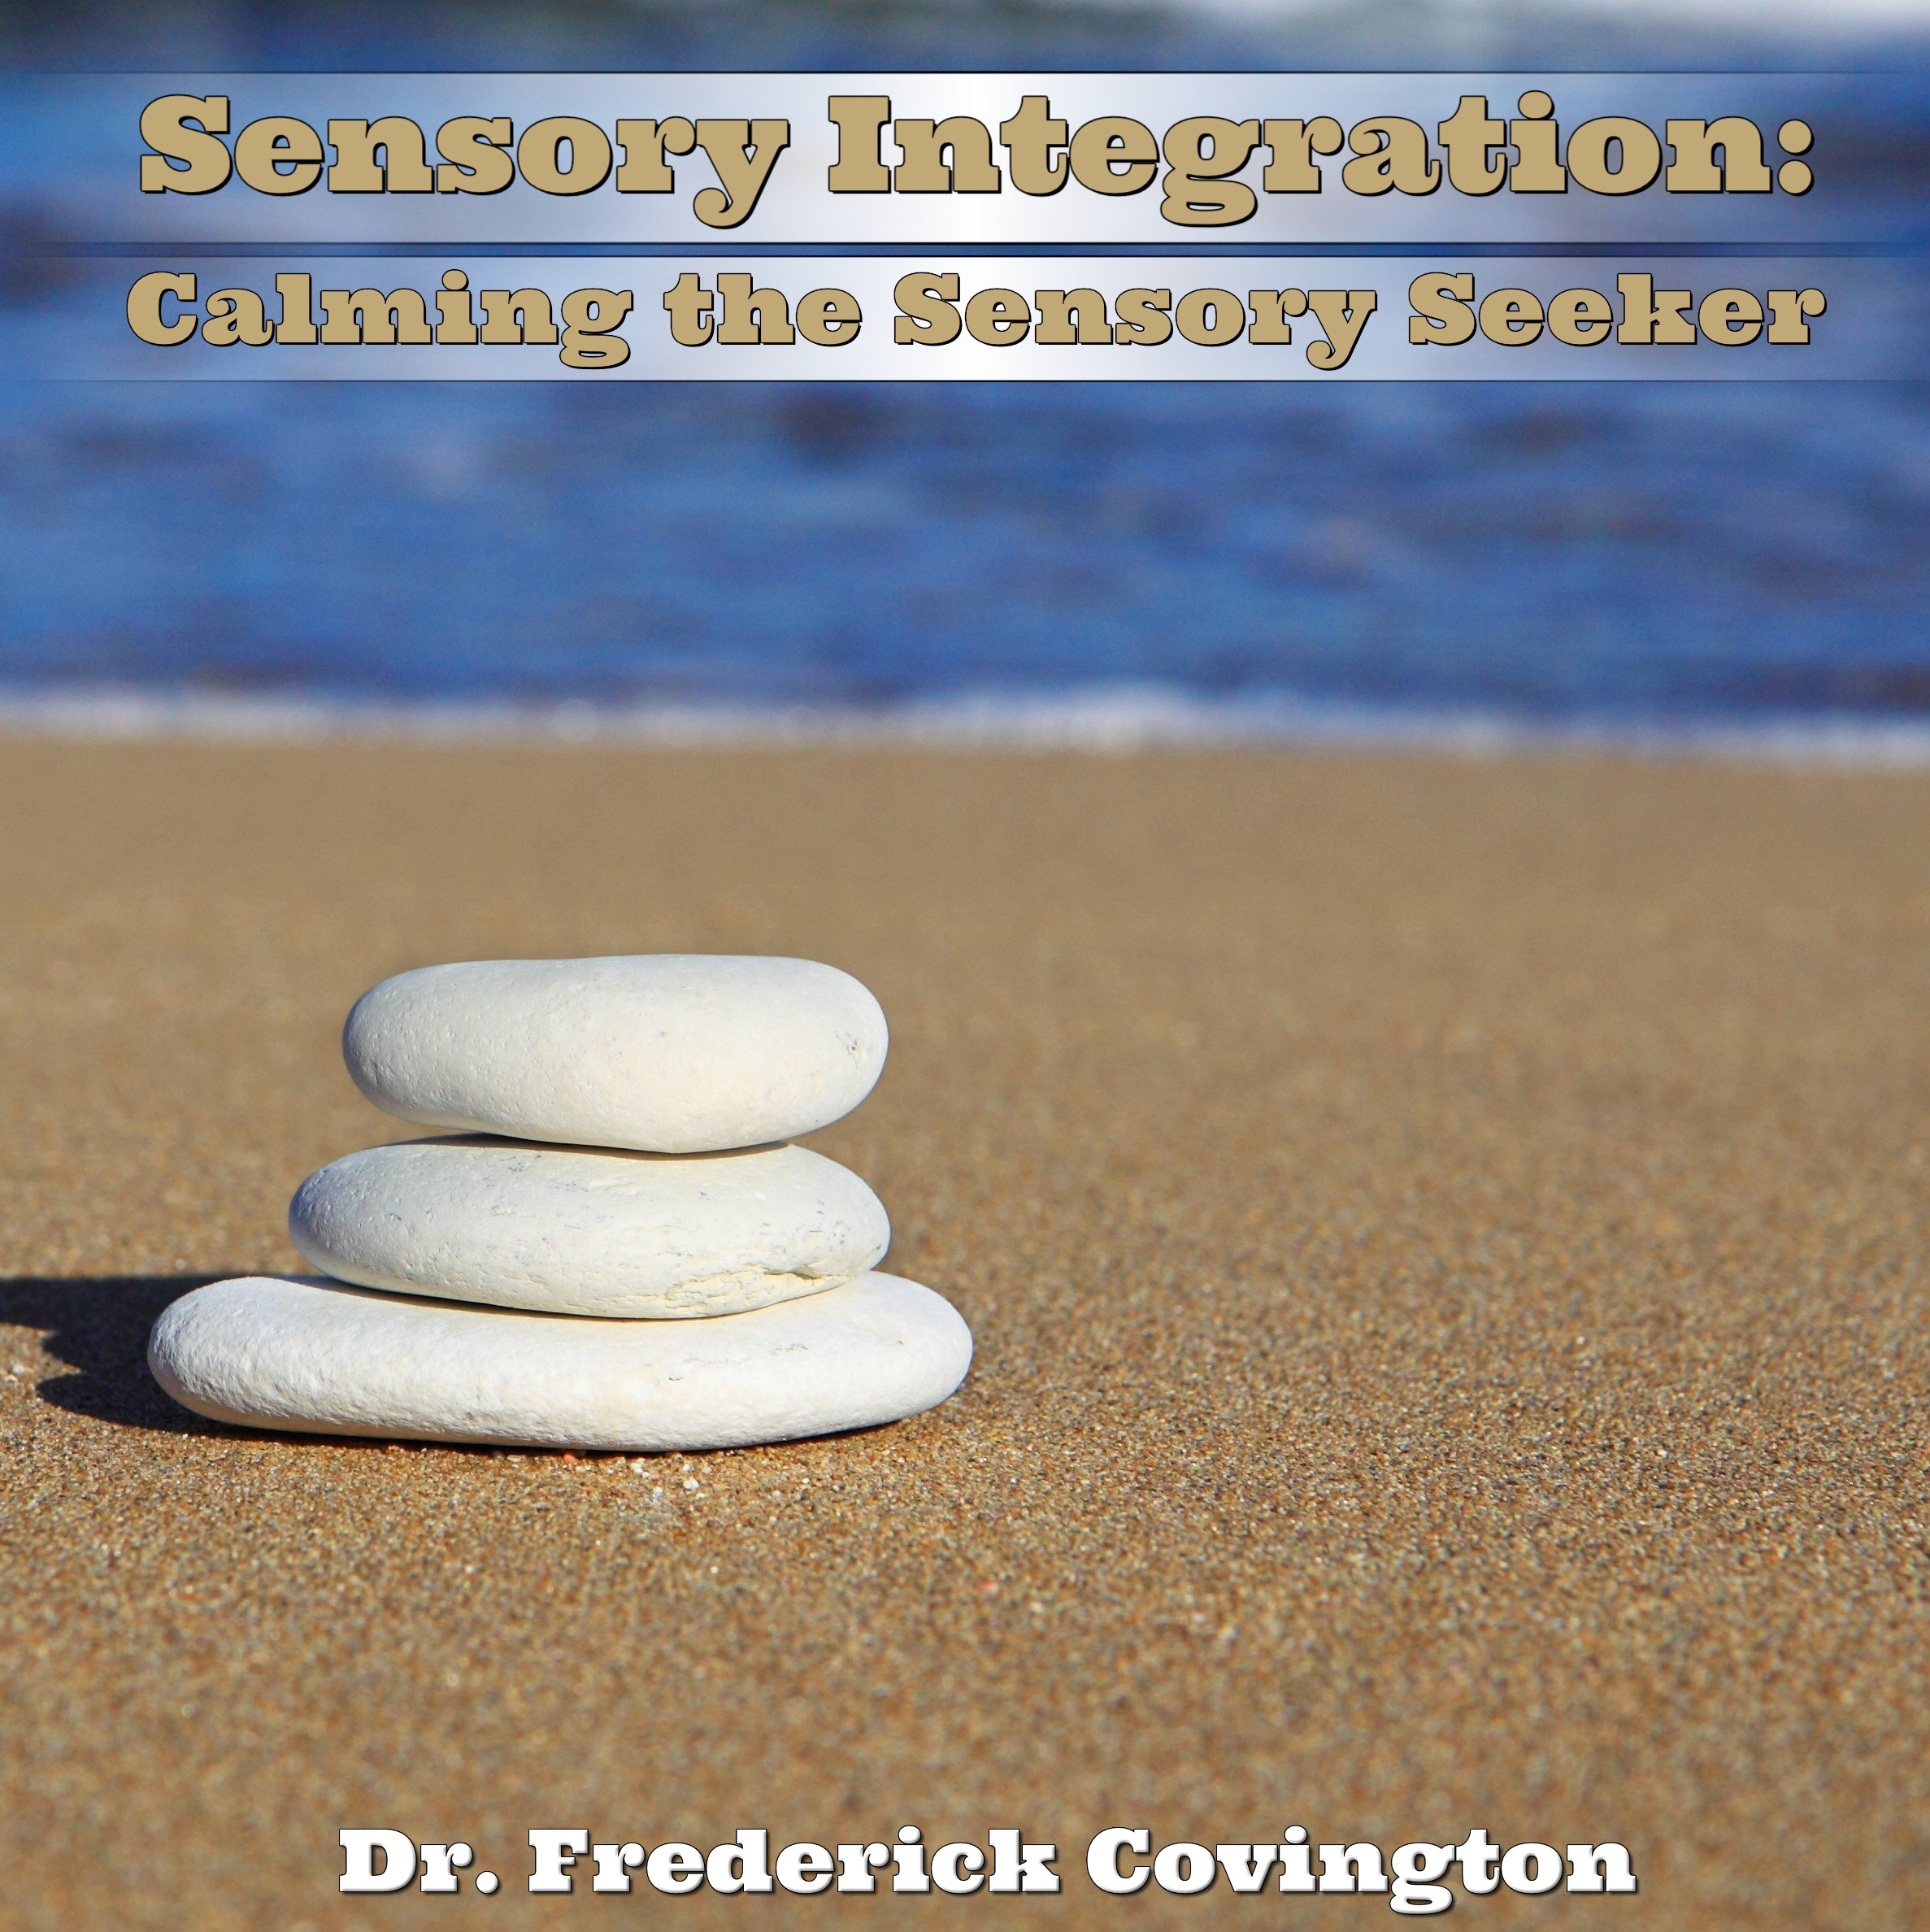 Calming the Sensory Seeker